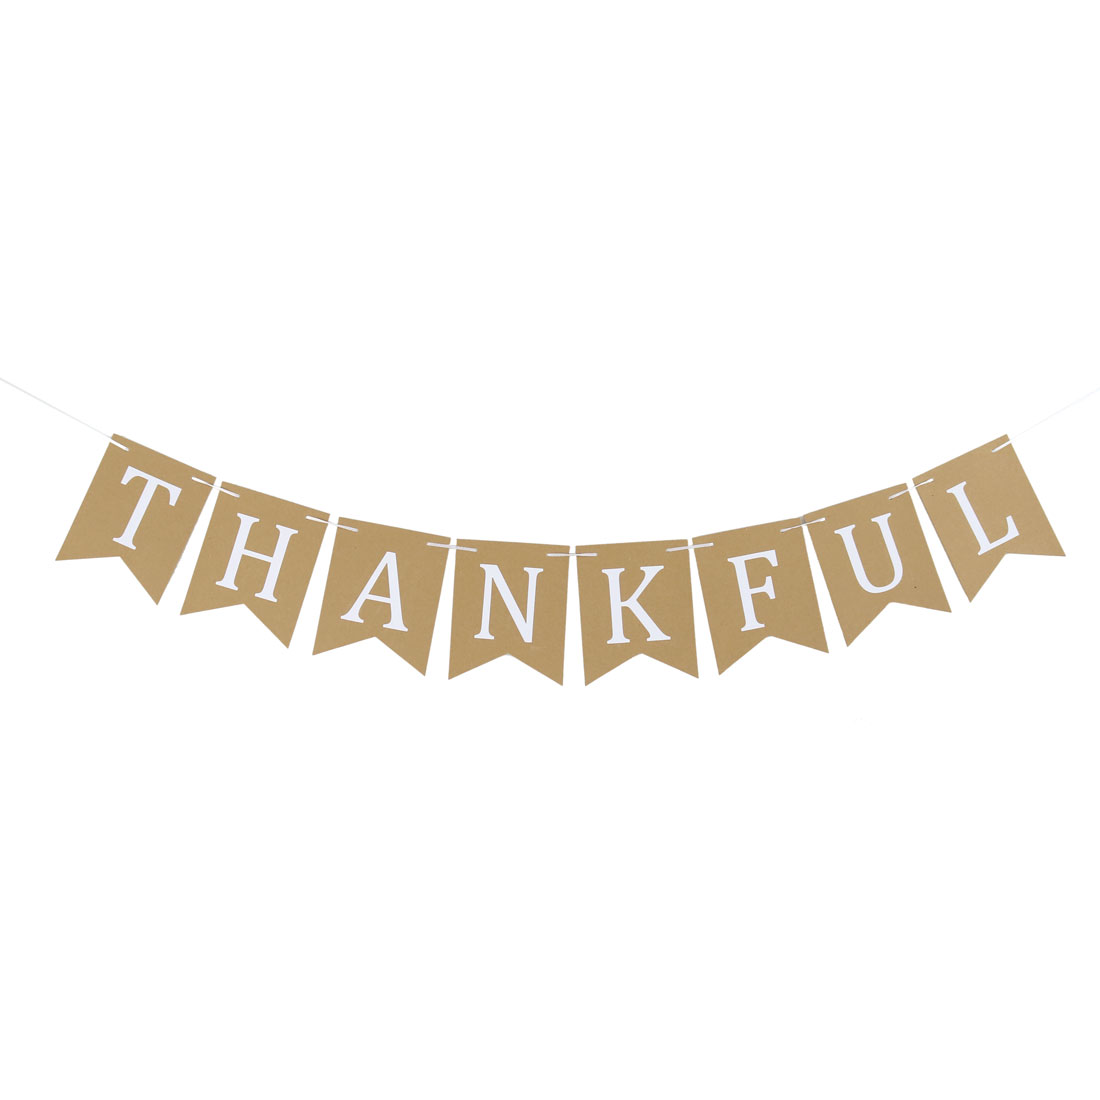 THANKFUL Letter Design DIY Party Decoration Photo Prop Bunting Banner Khaki White